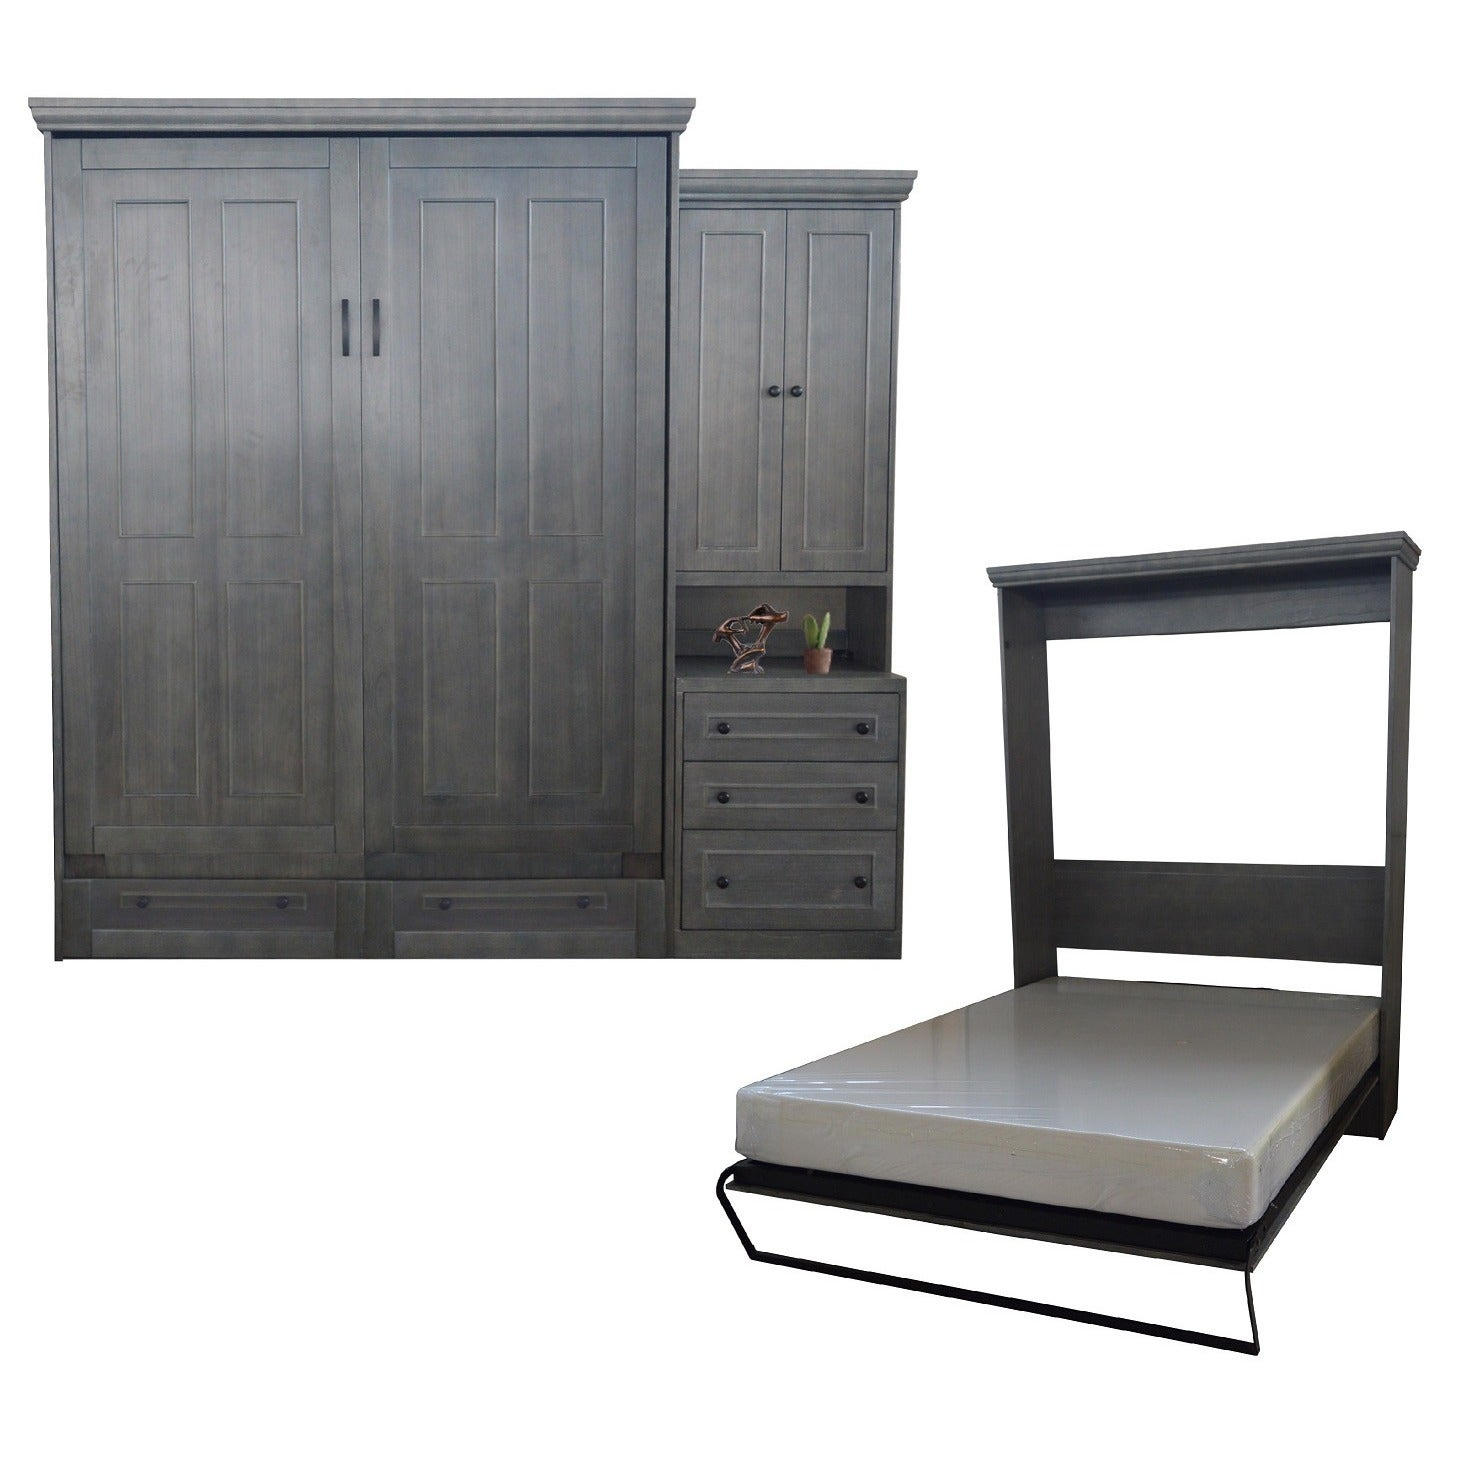 cabinet home one garden product free shipping pearl in murphy today bed with grey overstock pier queen devonshire